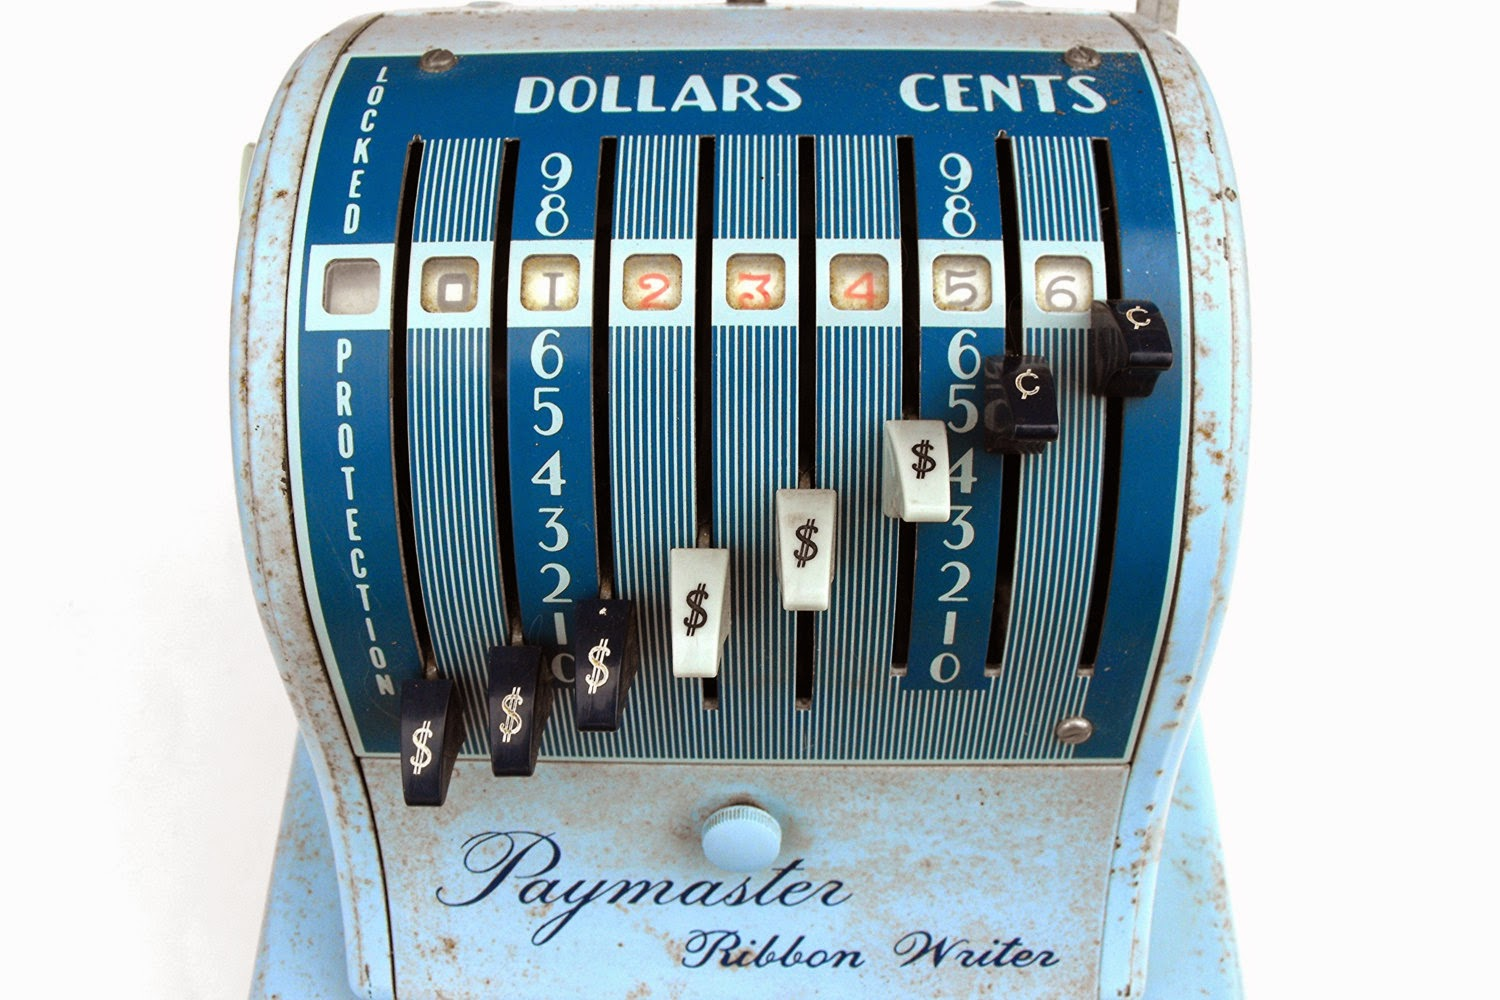 https://www.etsy.com/listing/181291432/1950s-paymaster-ribbon-writer?ref=shop_home_active_19